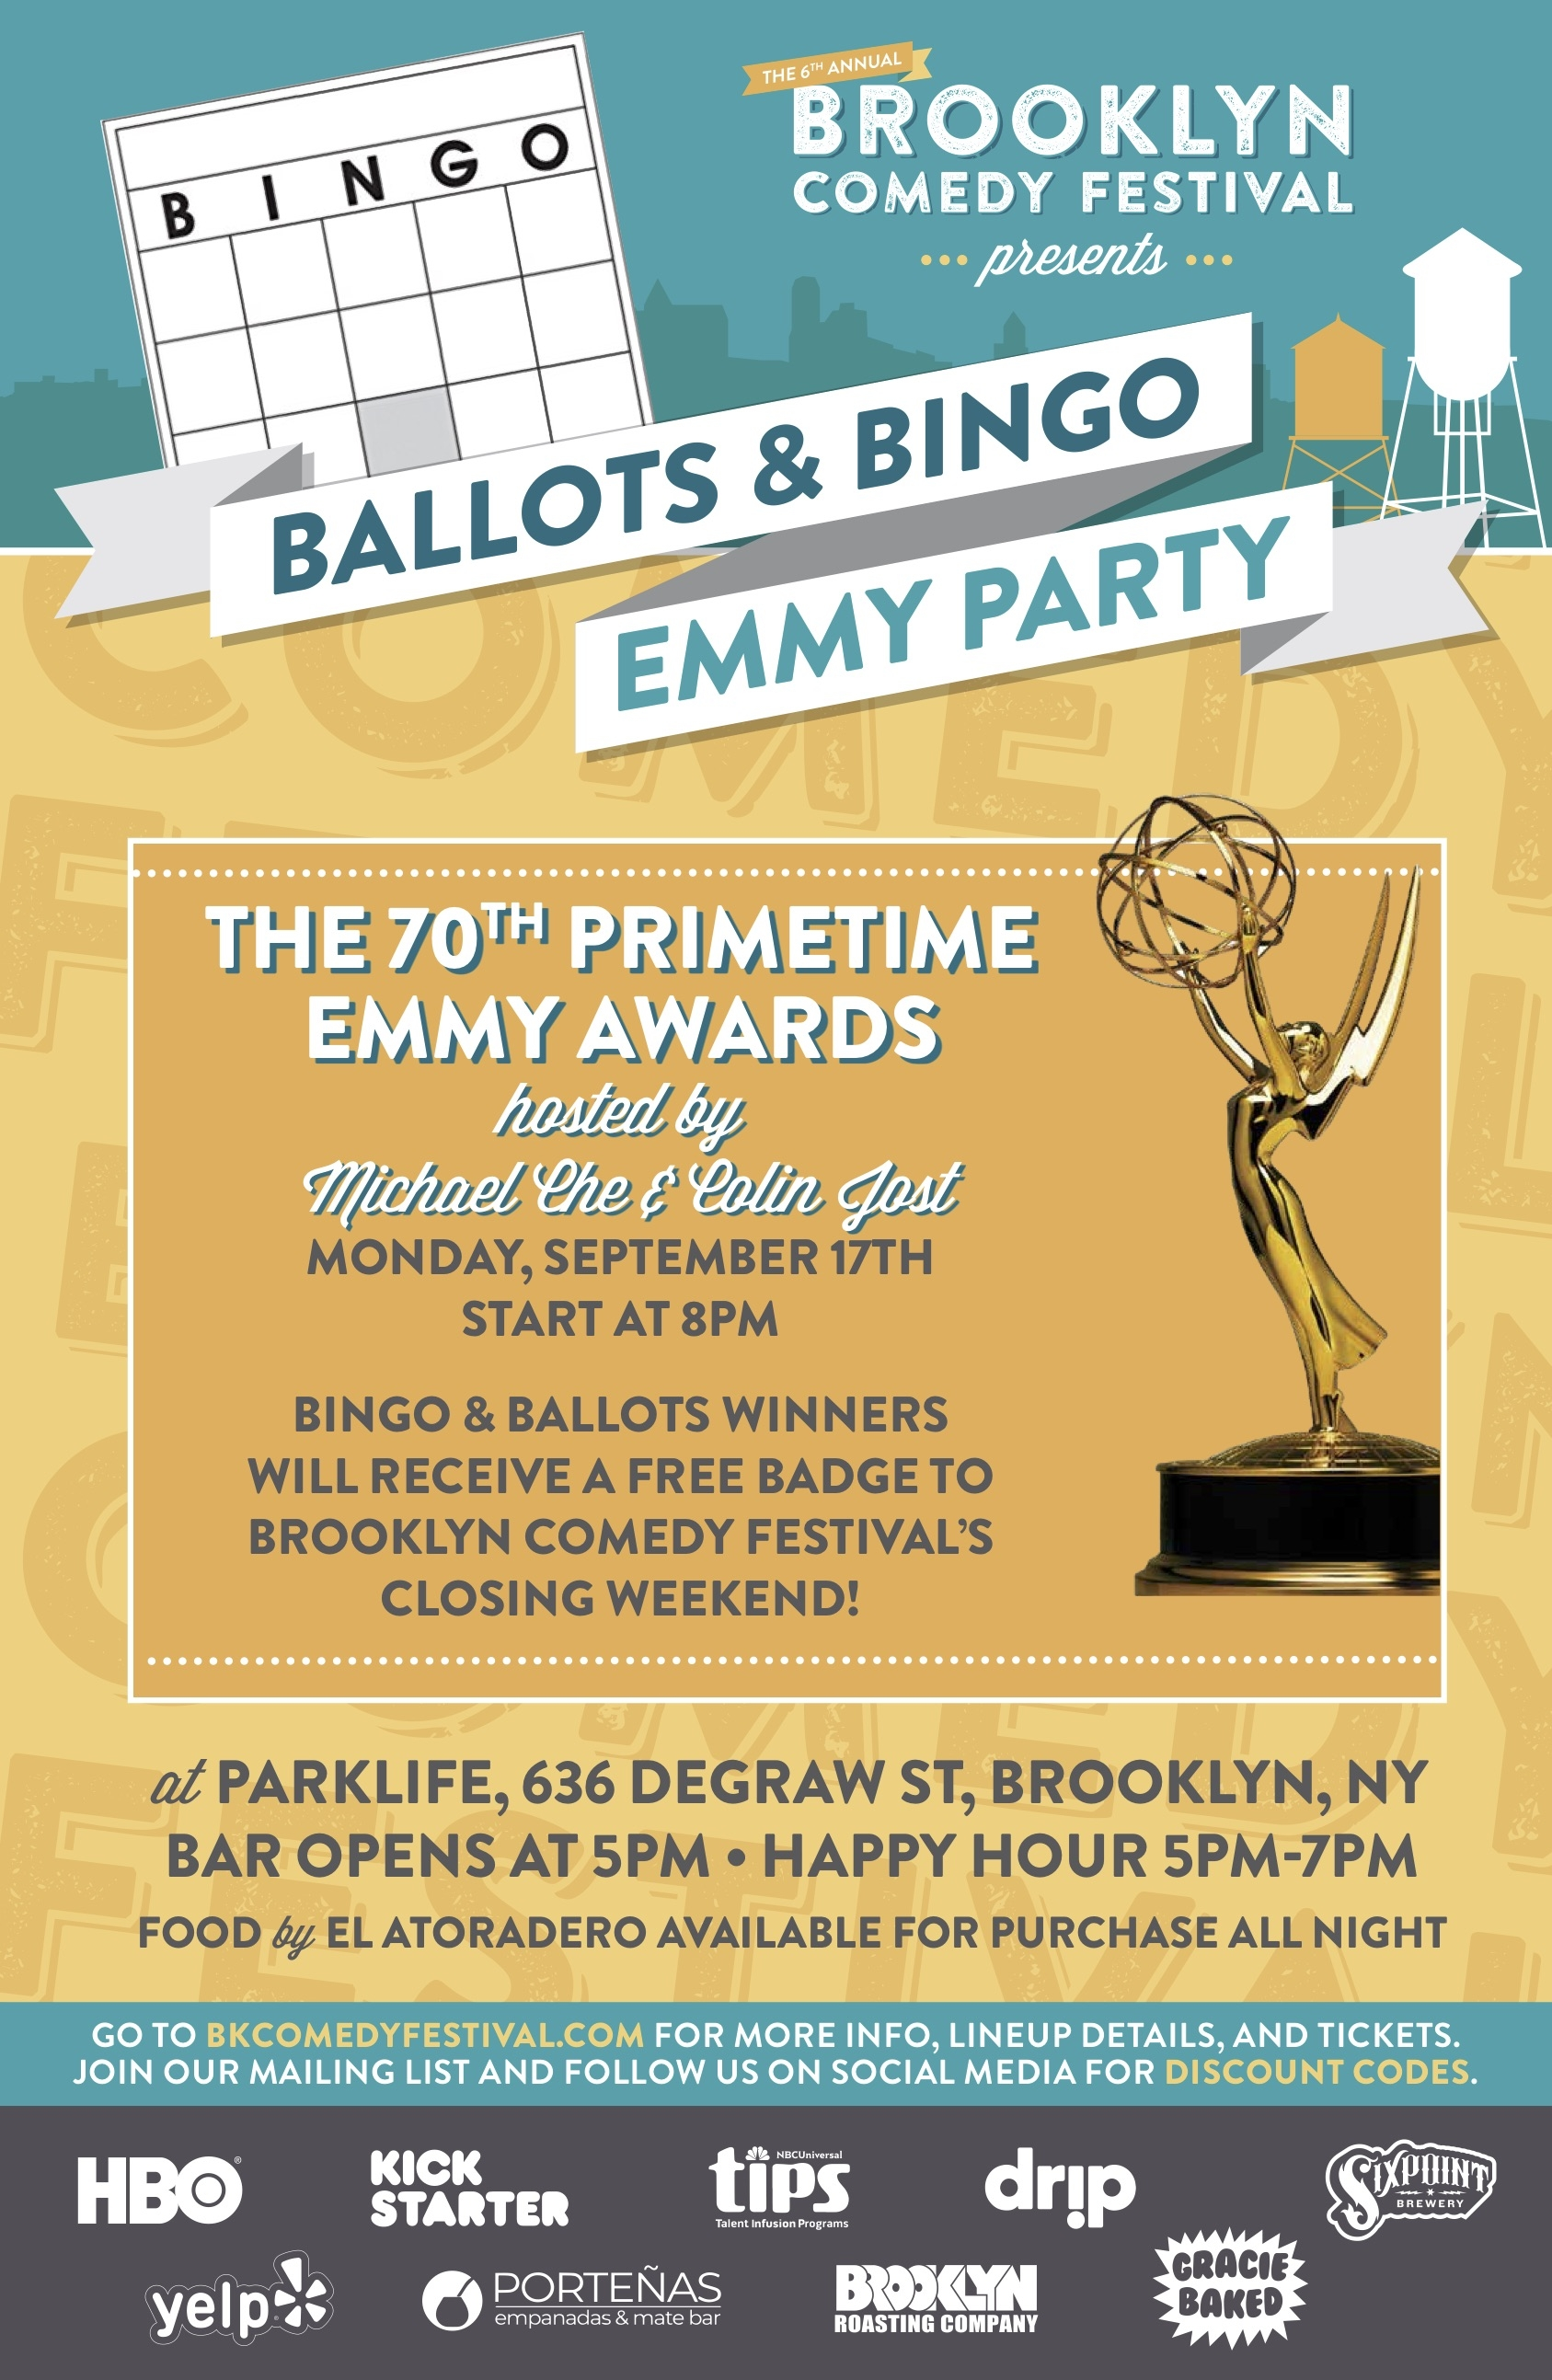 Brooklyn Comedy Festival's Emmy Ballots & Bingo Party